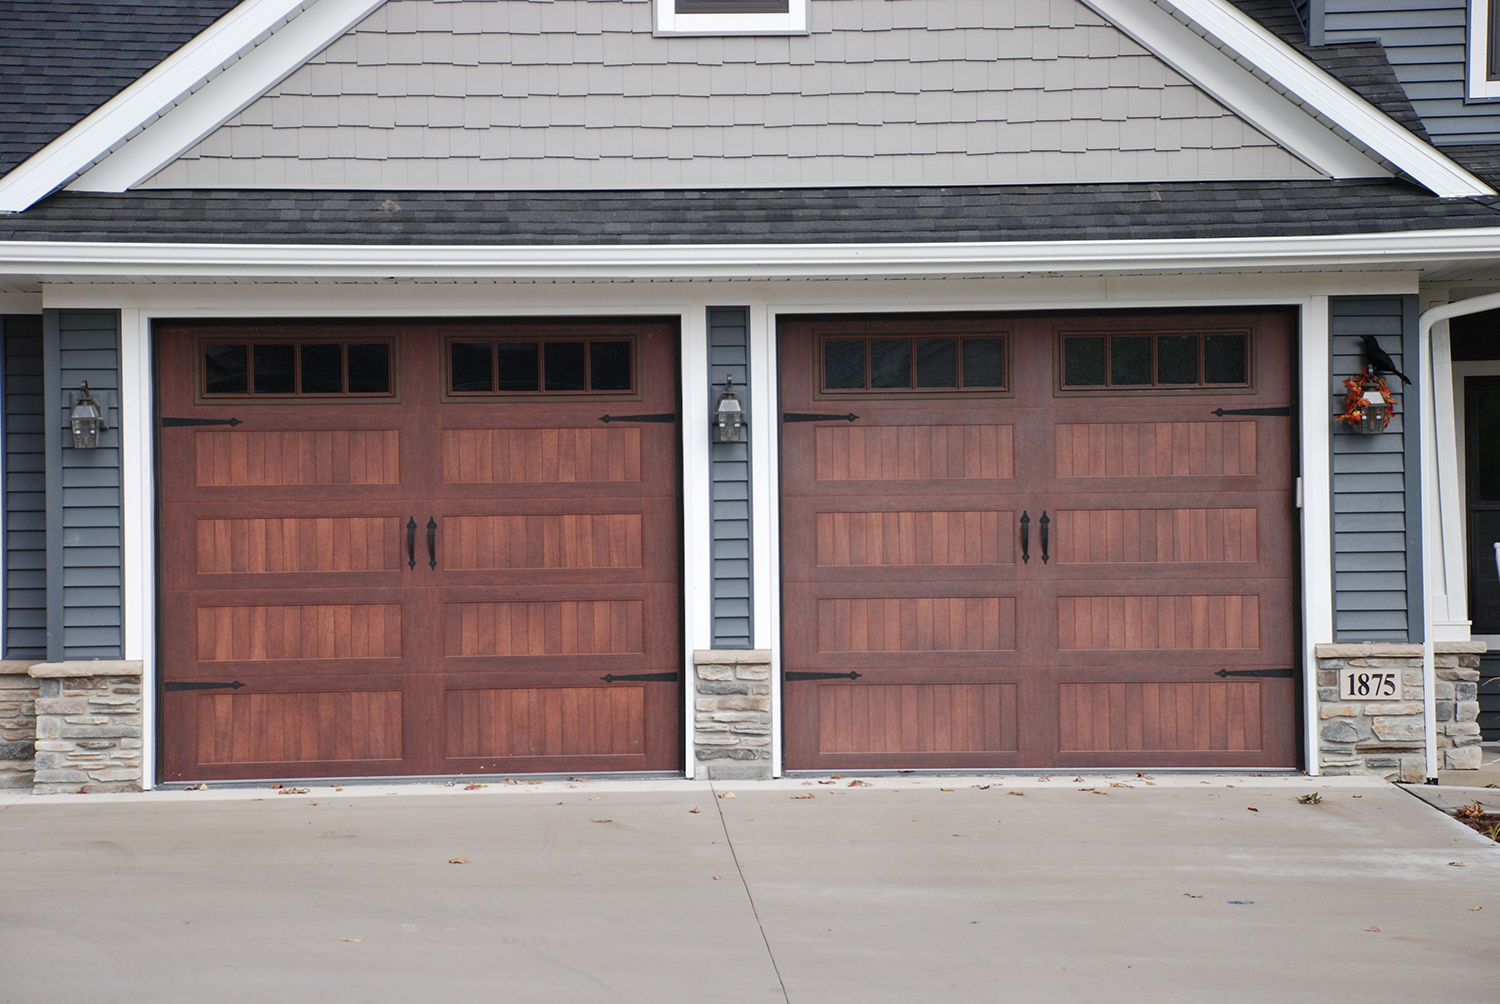 1004 #80524B Stained Metal Garage Doors® Stained Metal Doors image Overhead Garage Doors Residential Reviews 37131500